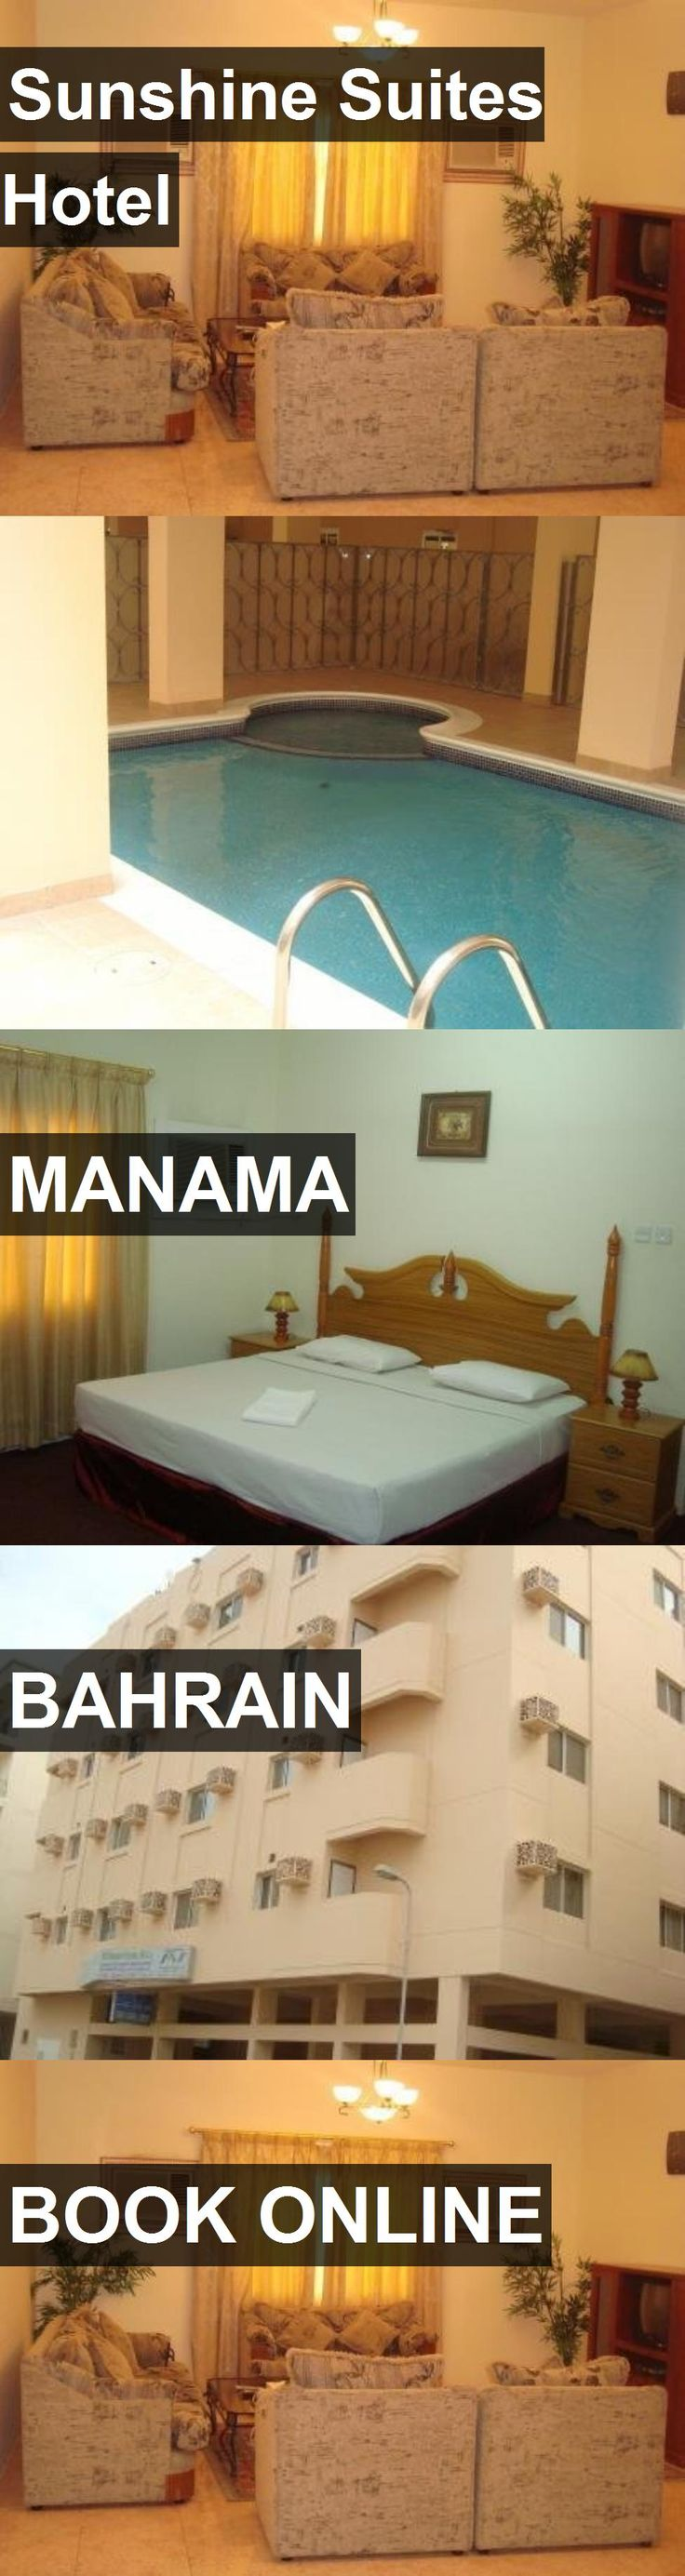 Hotel Sunshine Suites Hotel in Manama, Bahrain. For more information, photos, reviews and best prices please follow the link. #Bahrain #Manama #SunshineSuitesHotel #hotel #travel #vacation